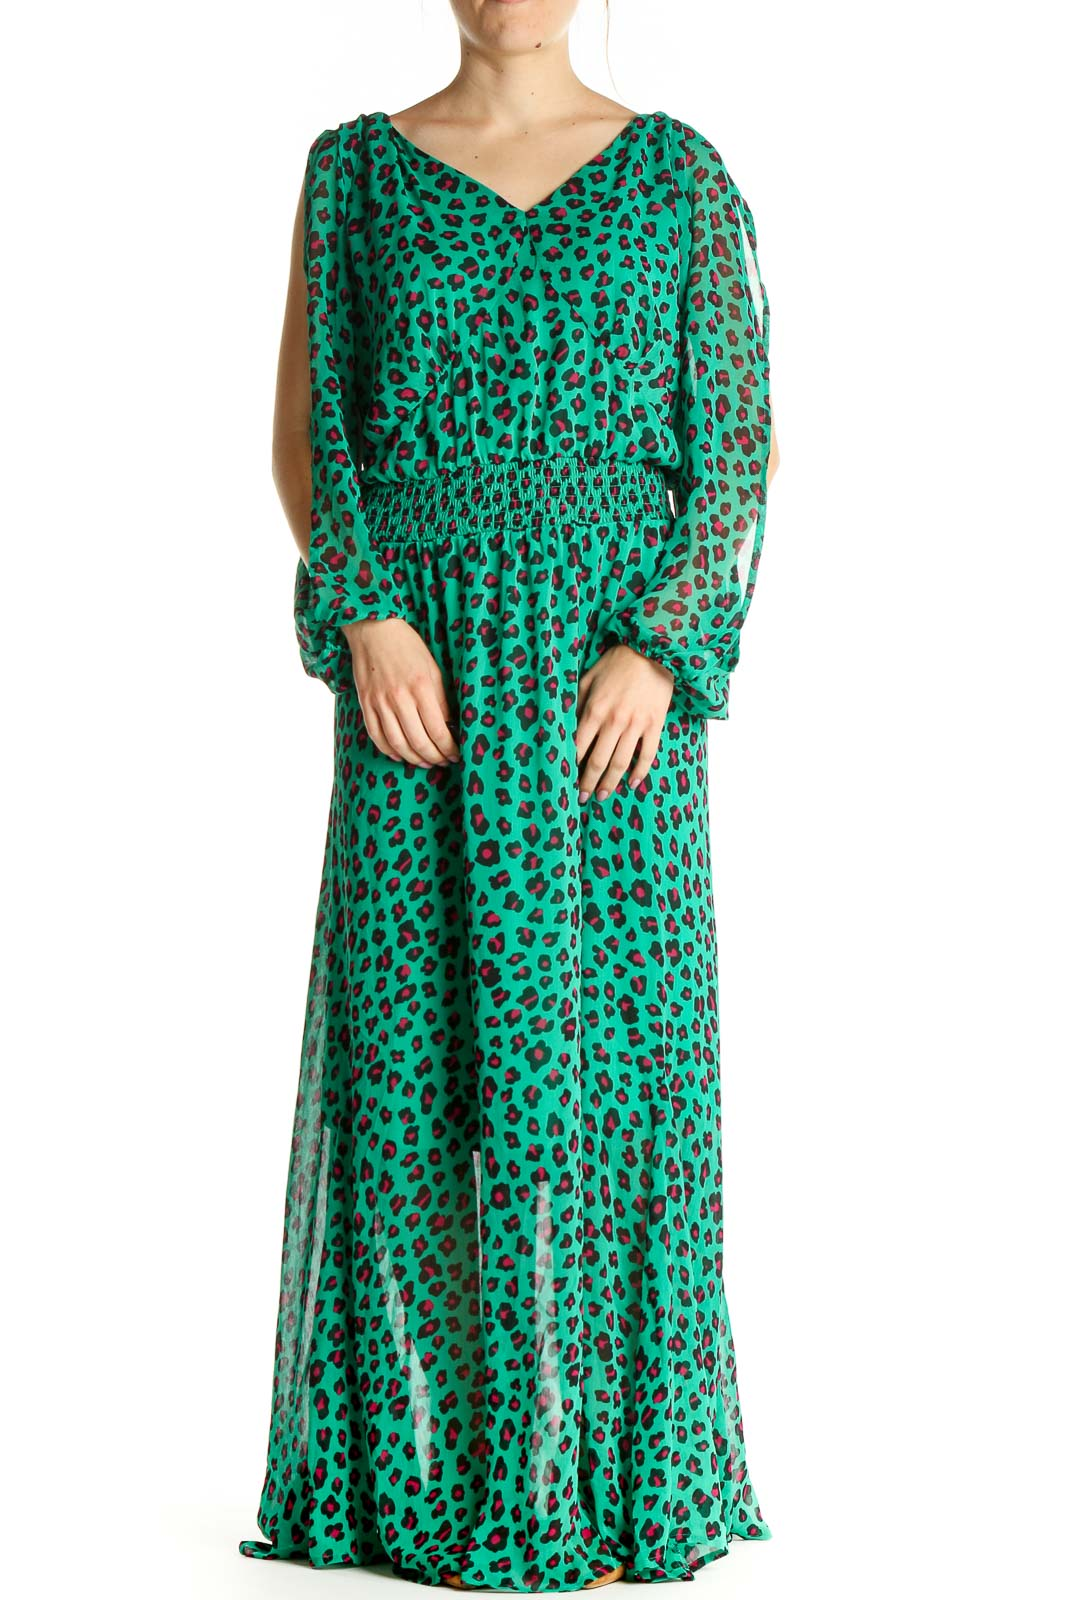 Green Chic Animal Print Fit & Flare Dress Front